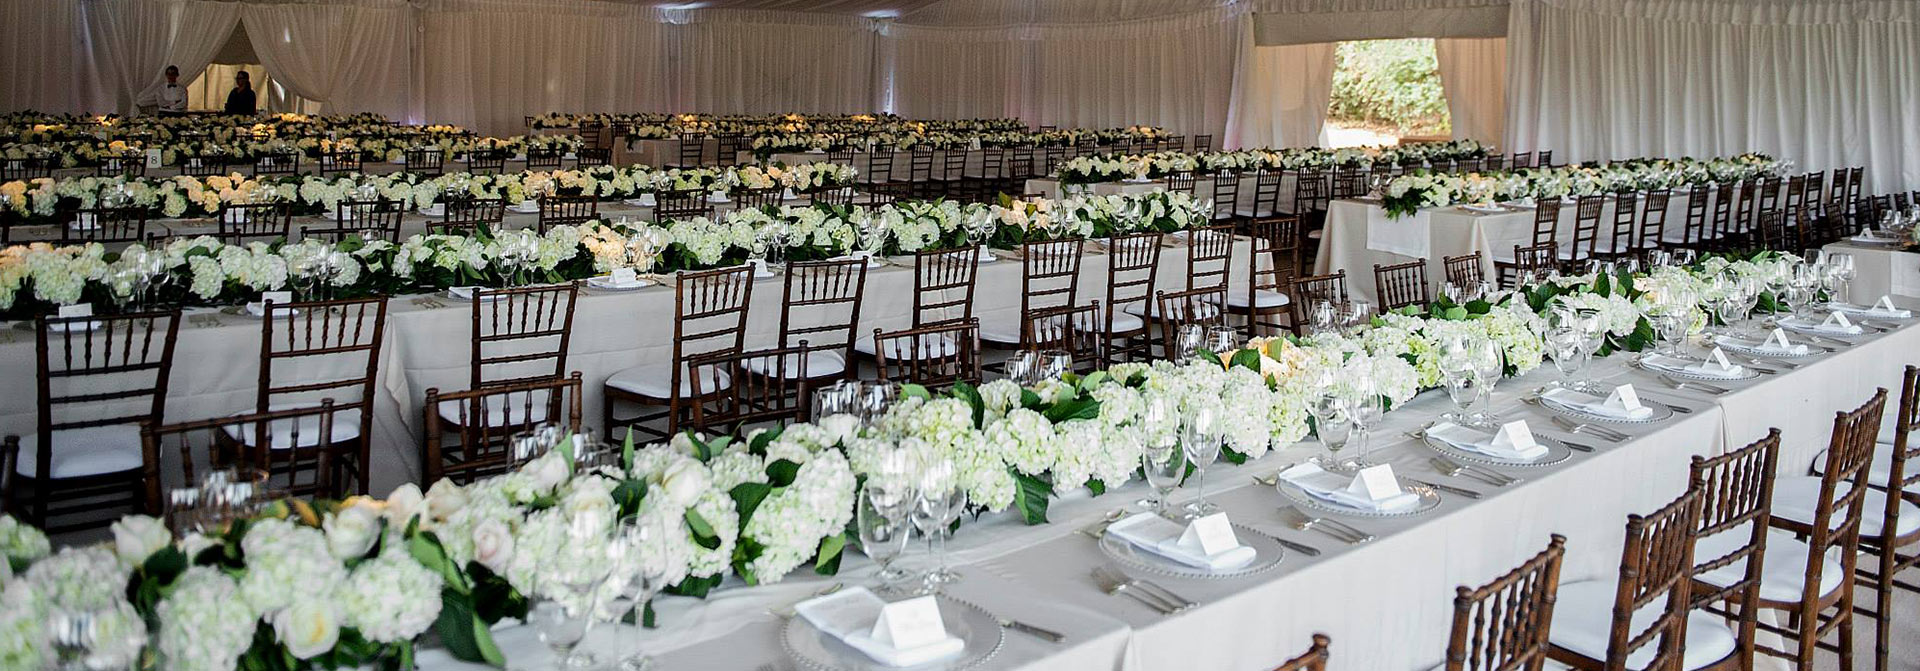 Plan and execute your dream event with the help of the professionals at Chattanooga Tent and Event Solutions.